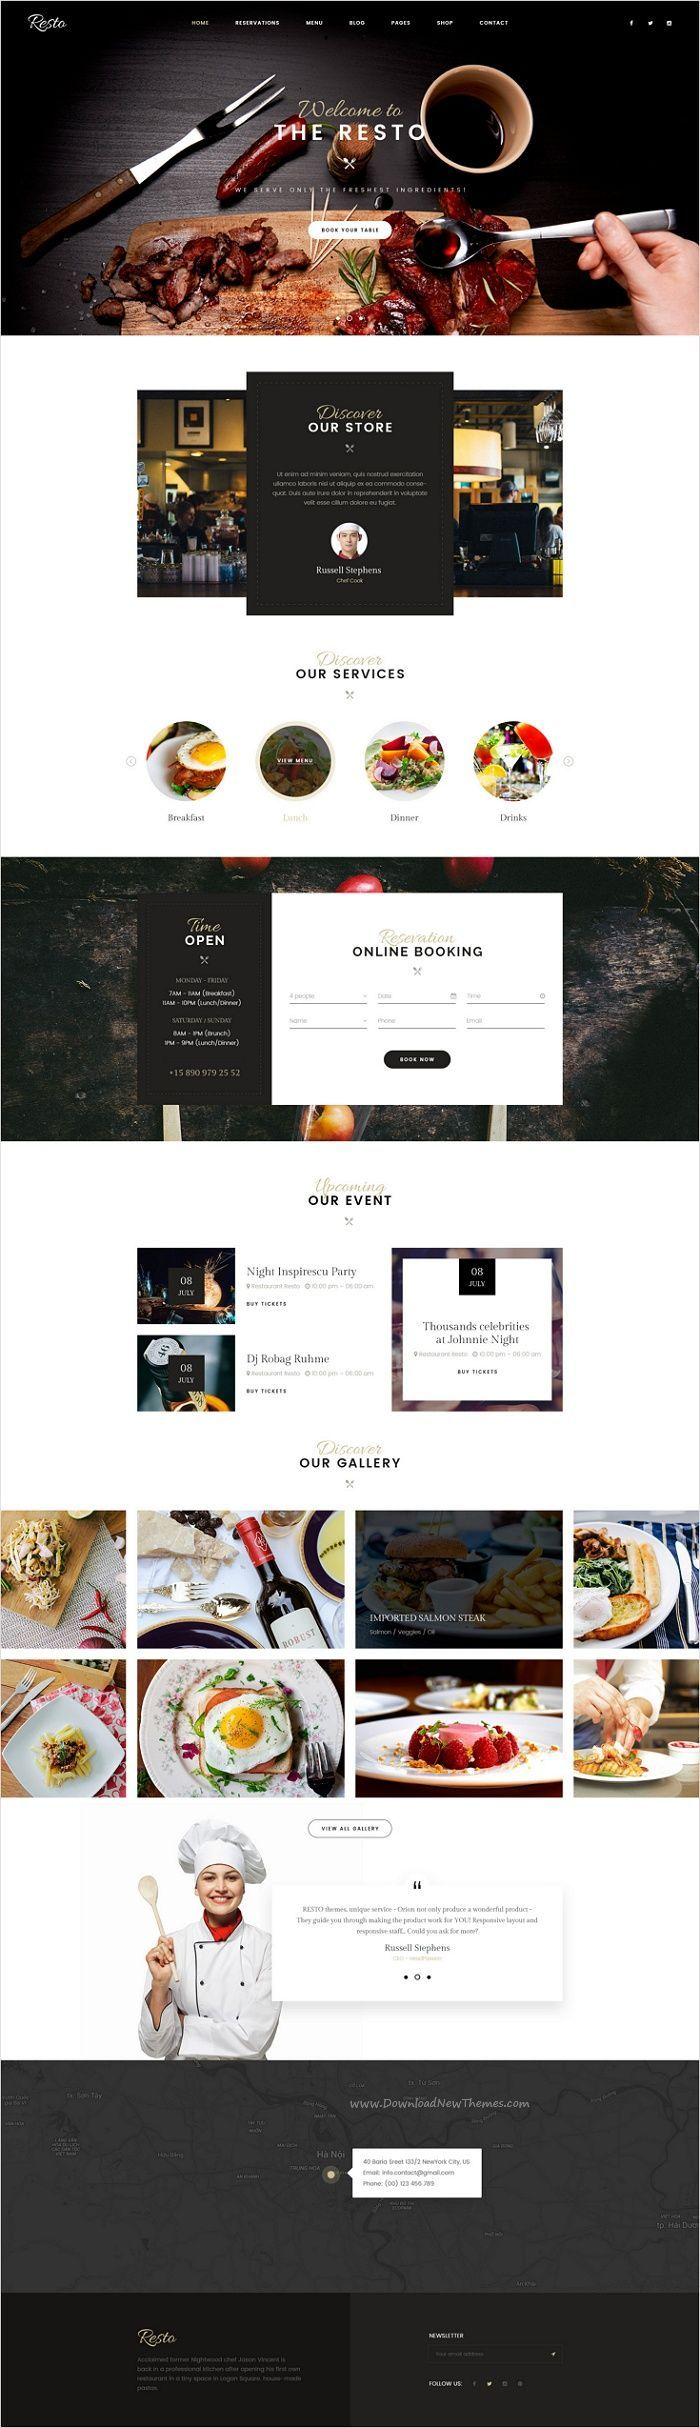 Resto is an attractive premium #PSD #template for awesome #restaurant, cafe or #food business website with 6 multipurpose homepage layouts and 22 organized PSD pages download now➩ https://themeforest.net/item/resto-multipurpose-restaurant-cafe-psd-template/17518251?ref=Datasata Looking for Clothes? Download the FREE unique Amazon Discount Finder Chrome Extension now! http://wp.me/p4YZIc-2Bg #discount